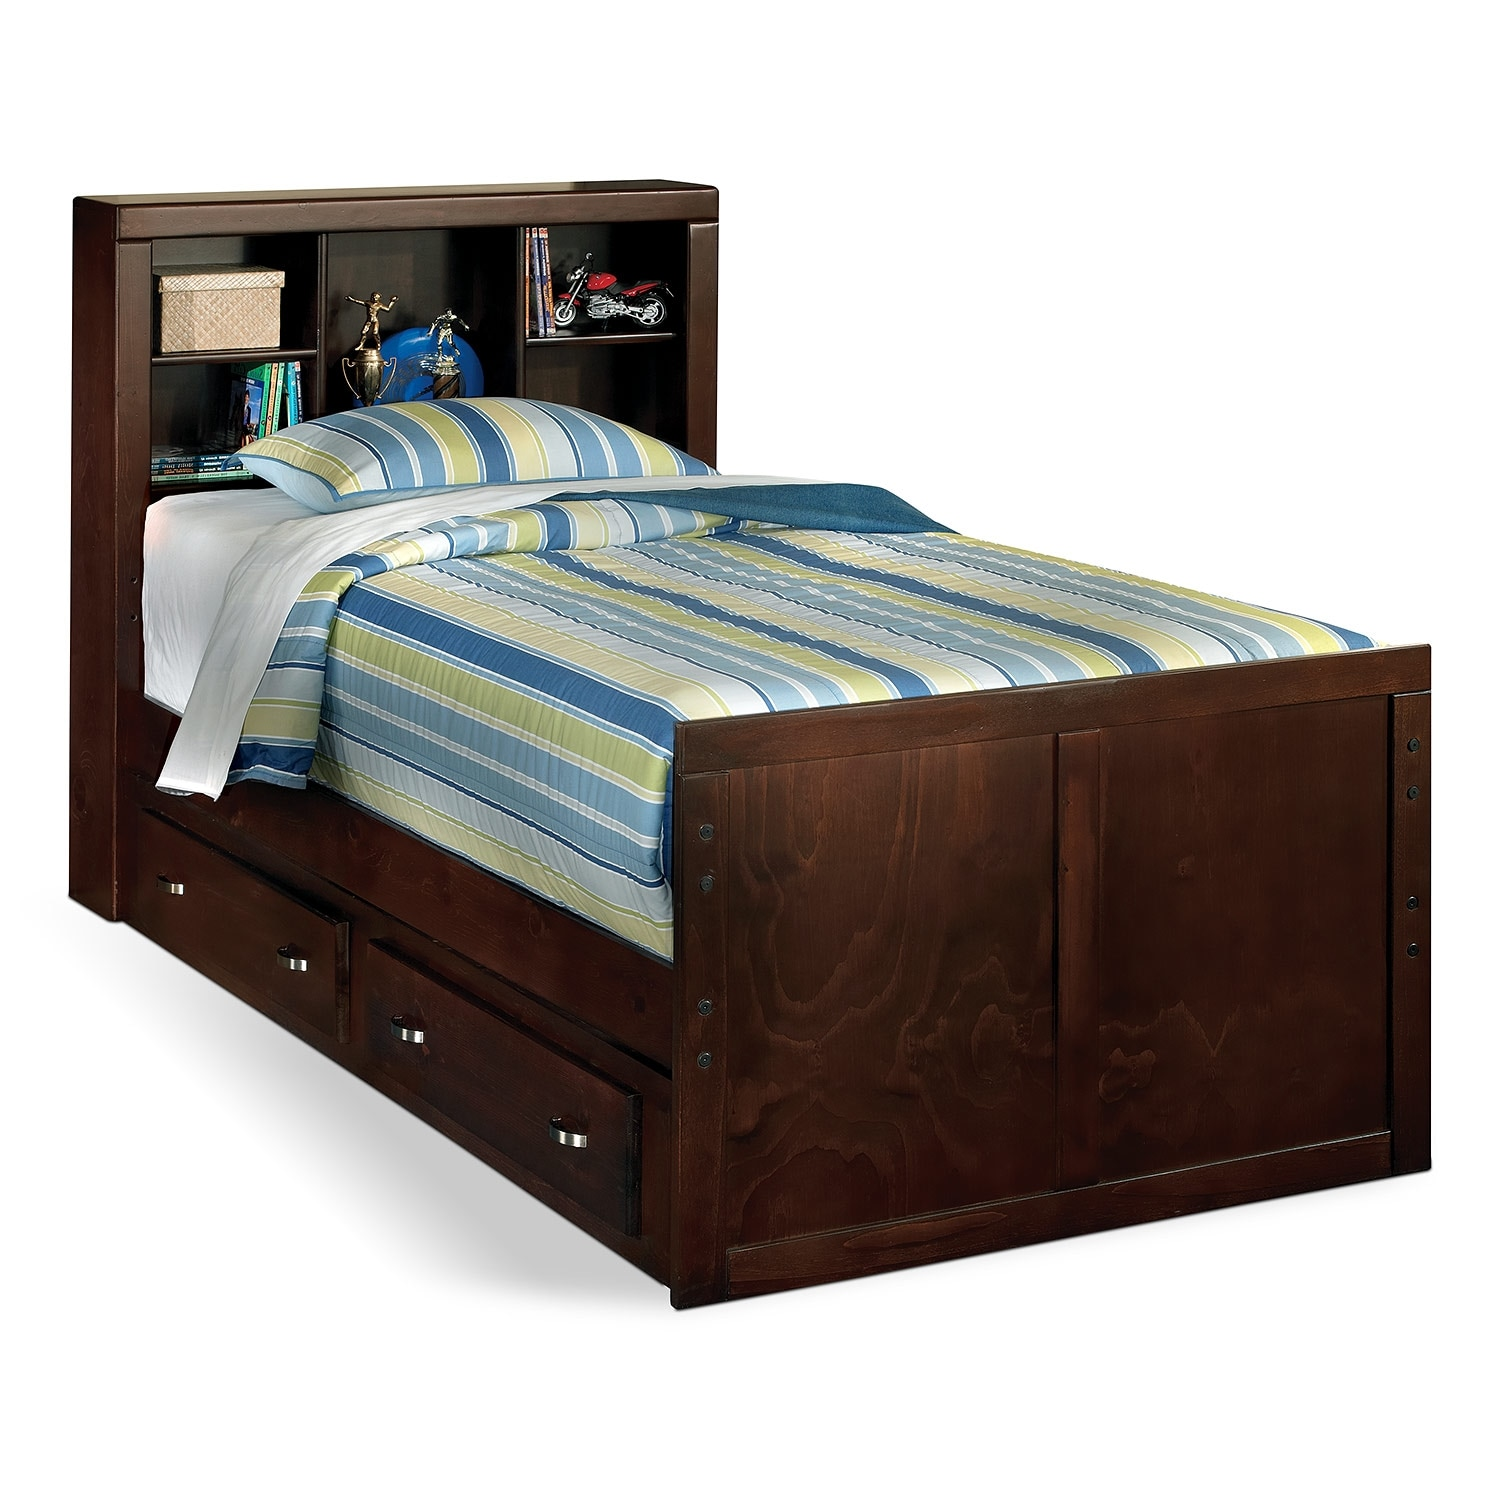 Coming soon - Kids bed with drawers underneath ...